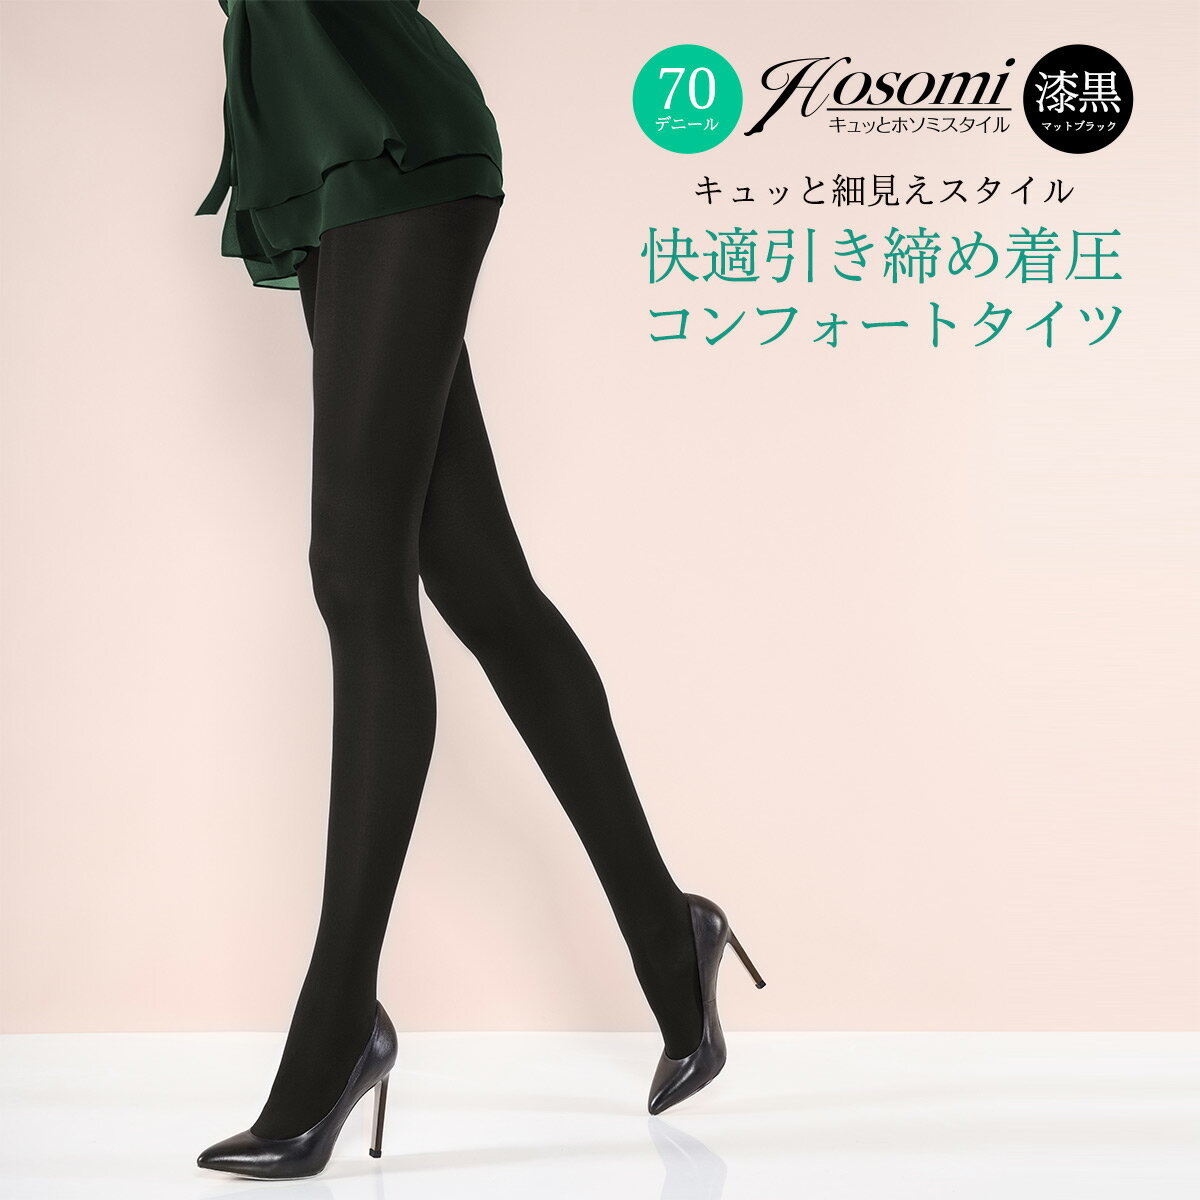 Are pantyhose in style